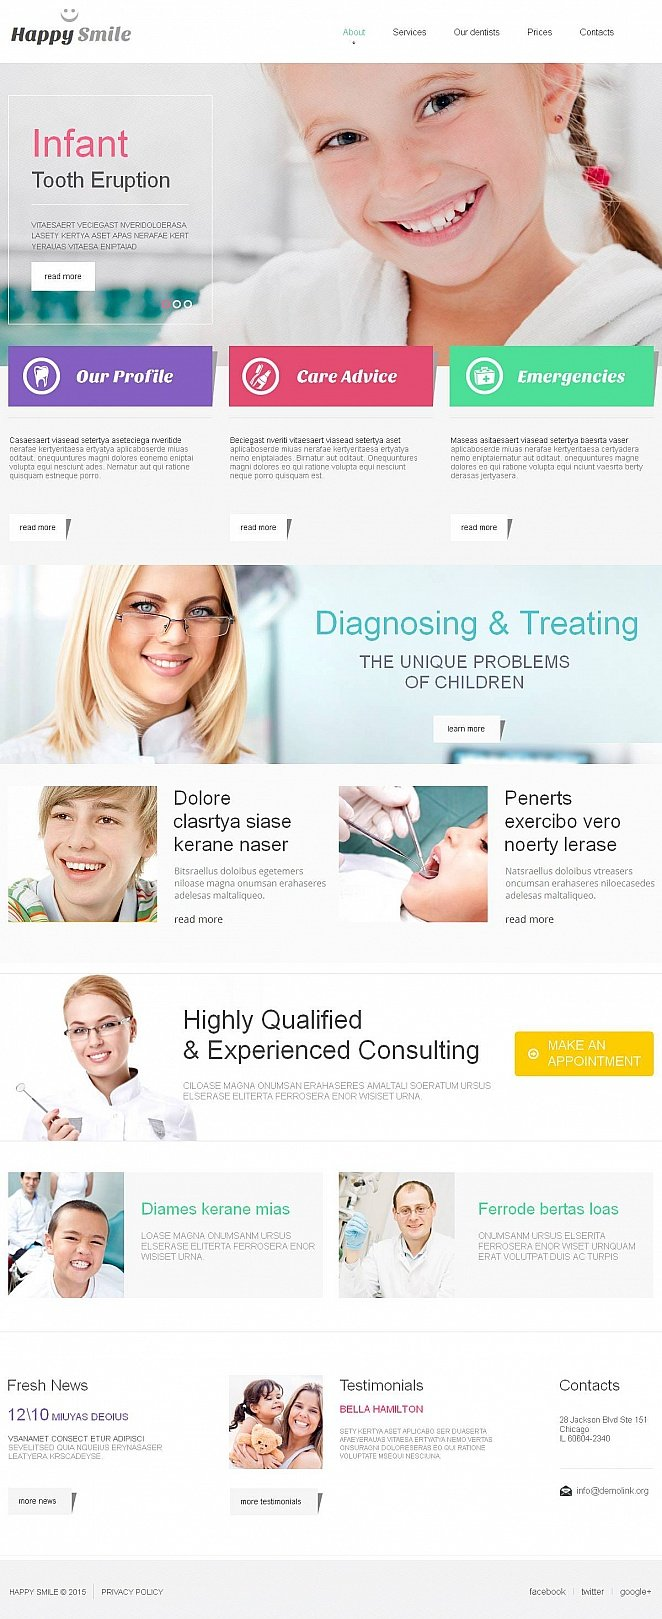 Metro Design Website Template for Dentistry - image